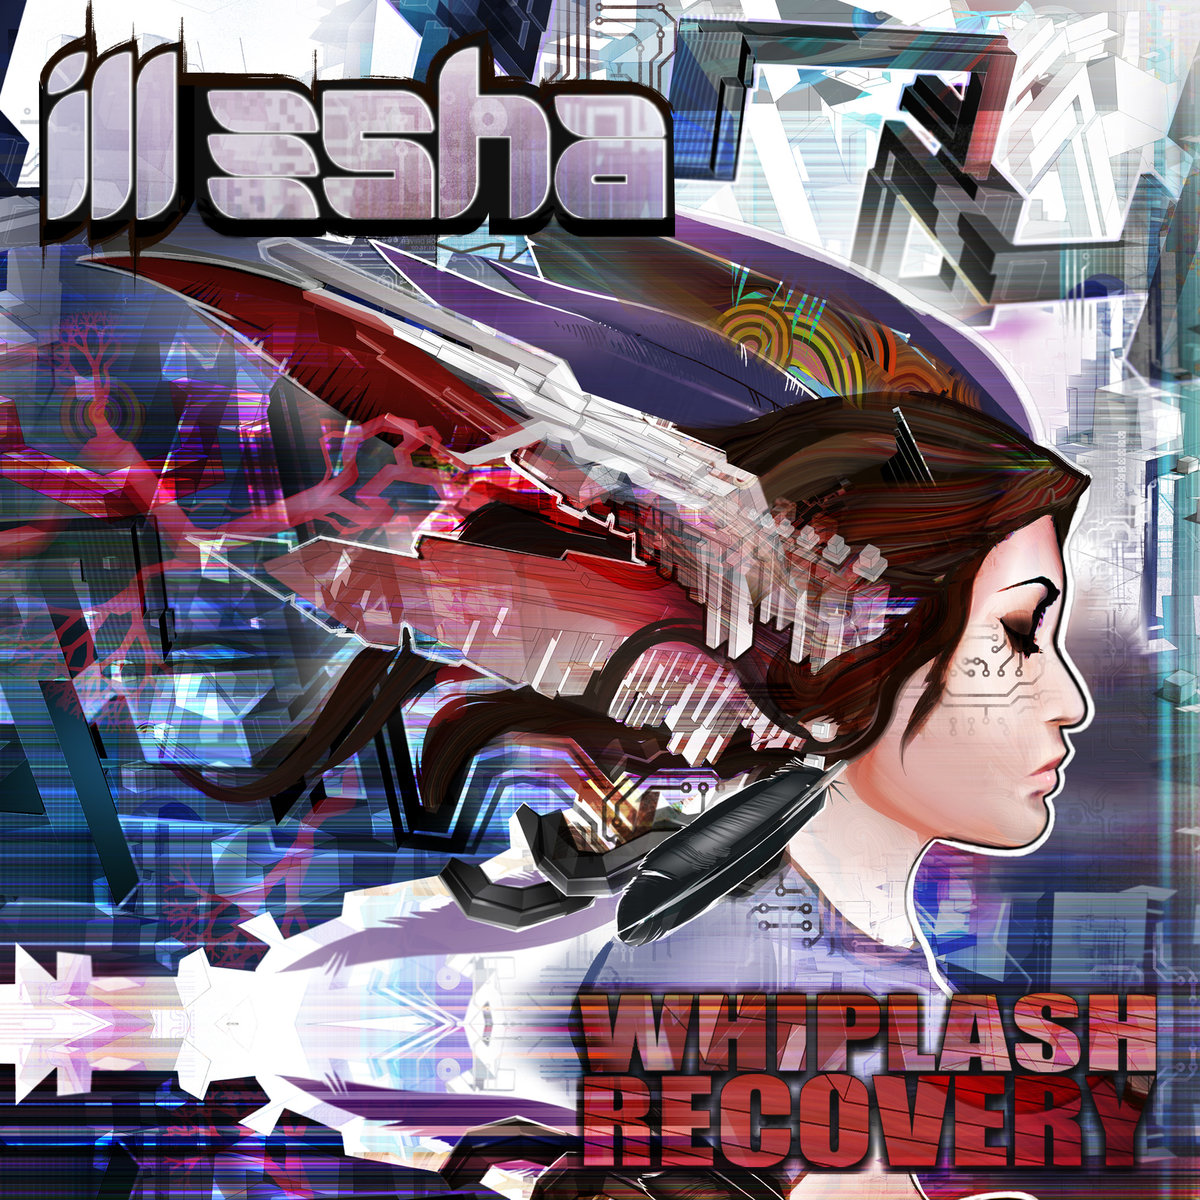 ill-esha - Bad Spell @ 'Whiplash Recovery' album (california, denver)